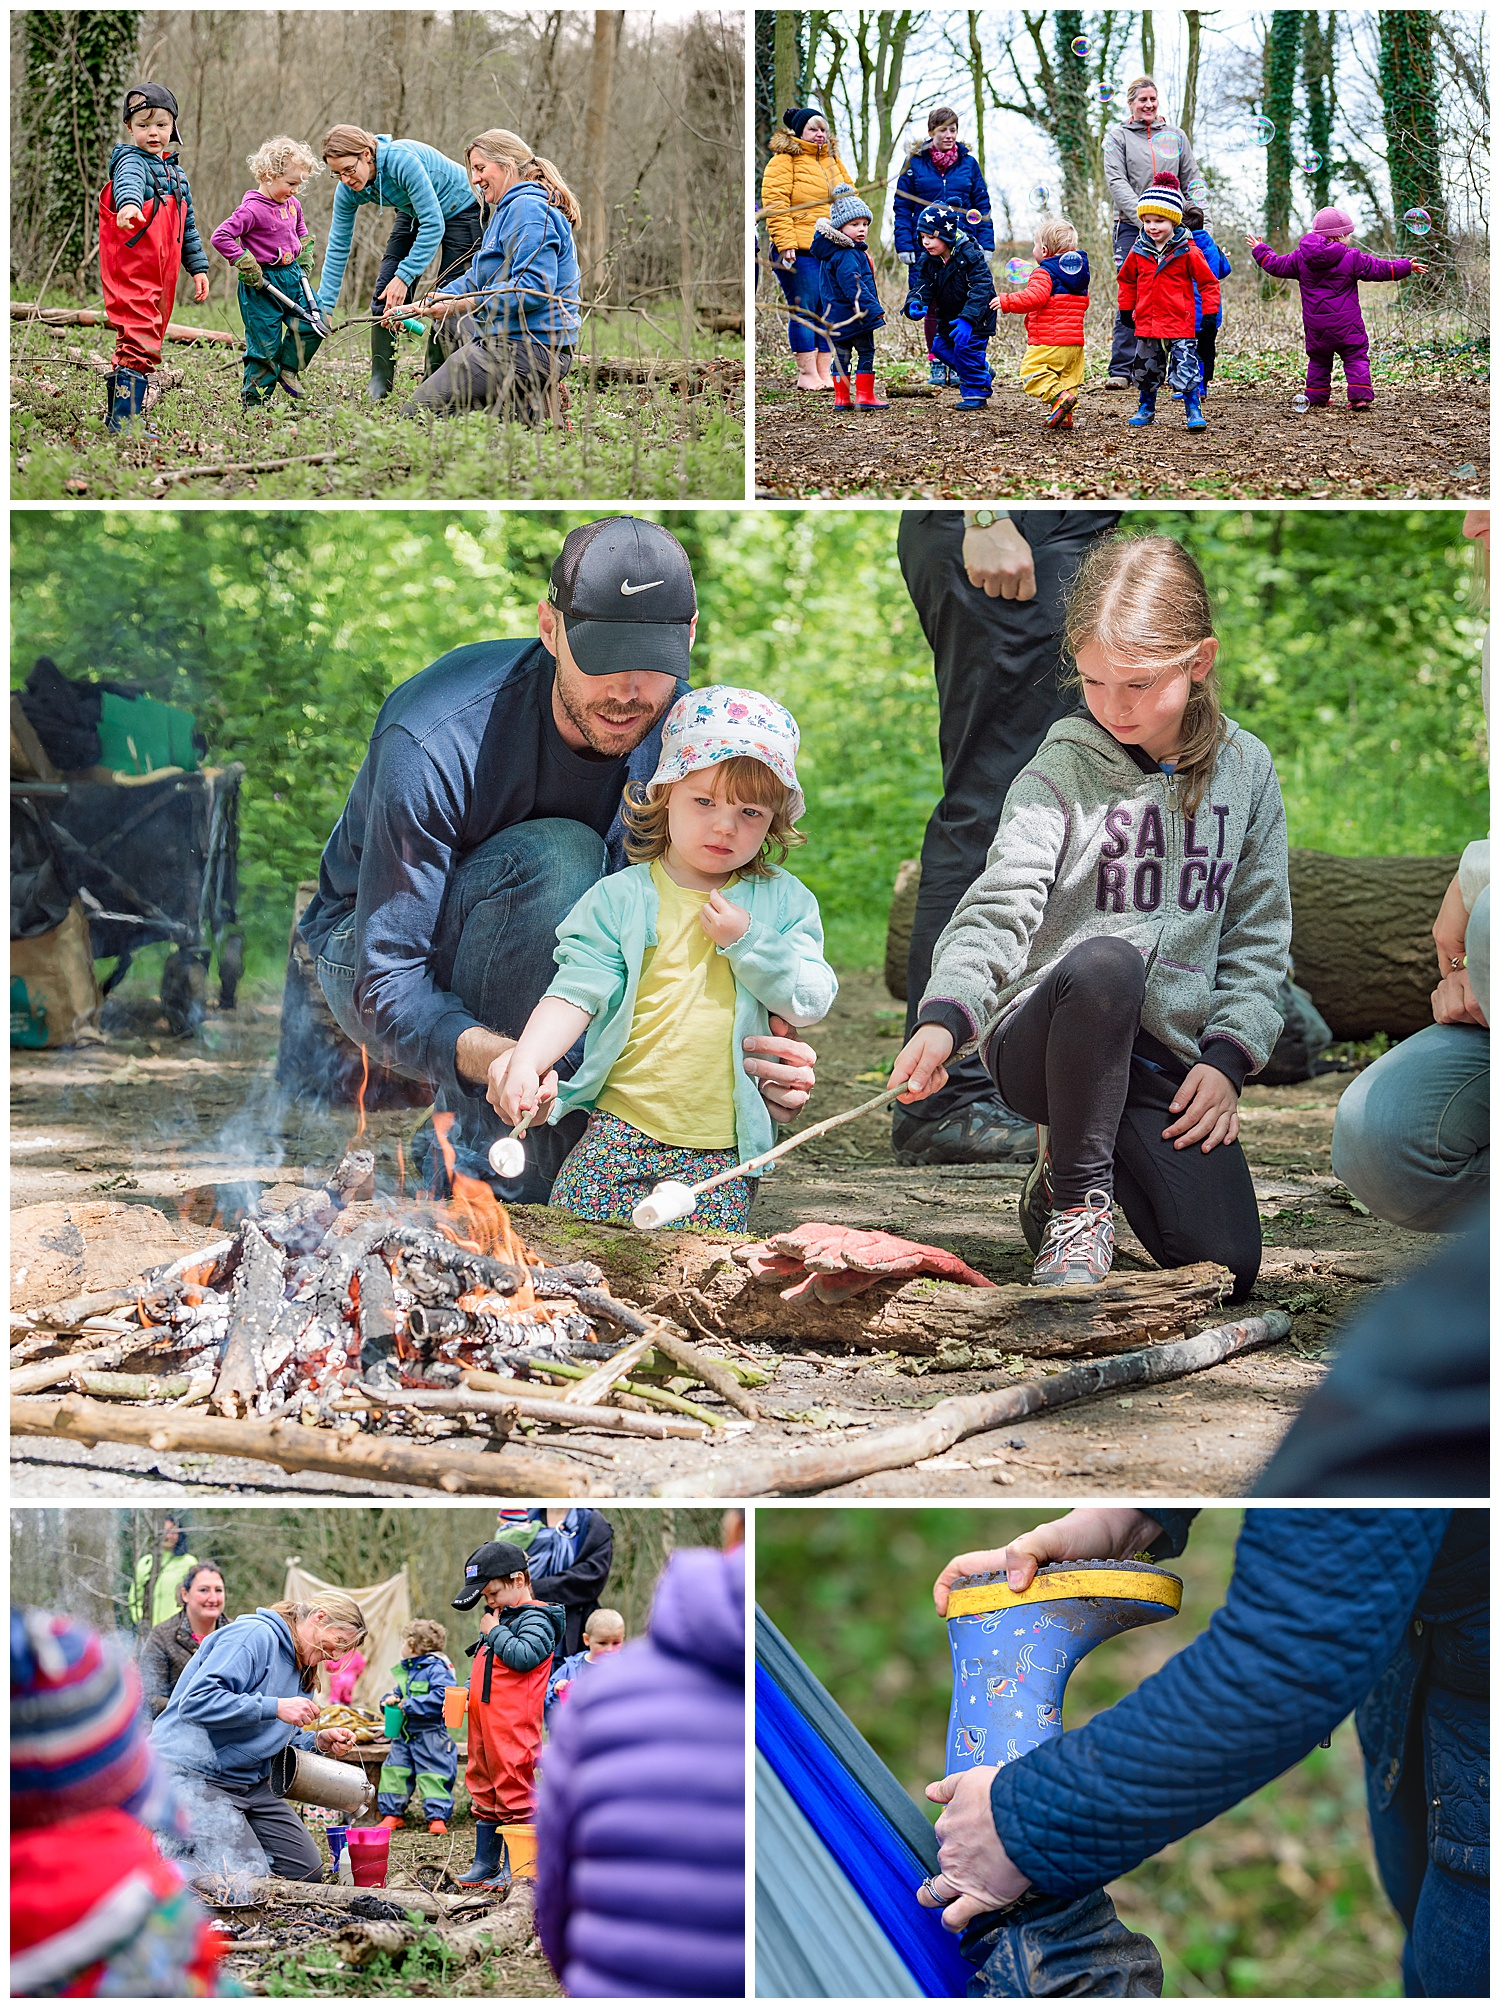 Montage of photos of children enjoying themselves at forest school including campfires, bubbles, wellies and branch cutting